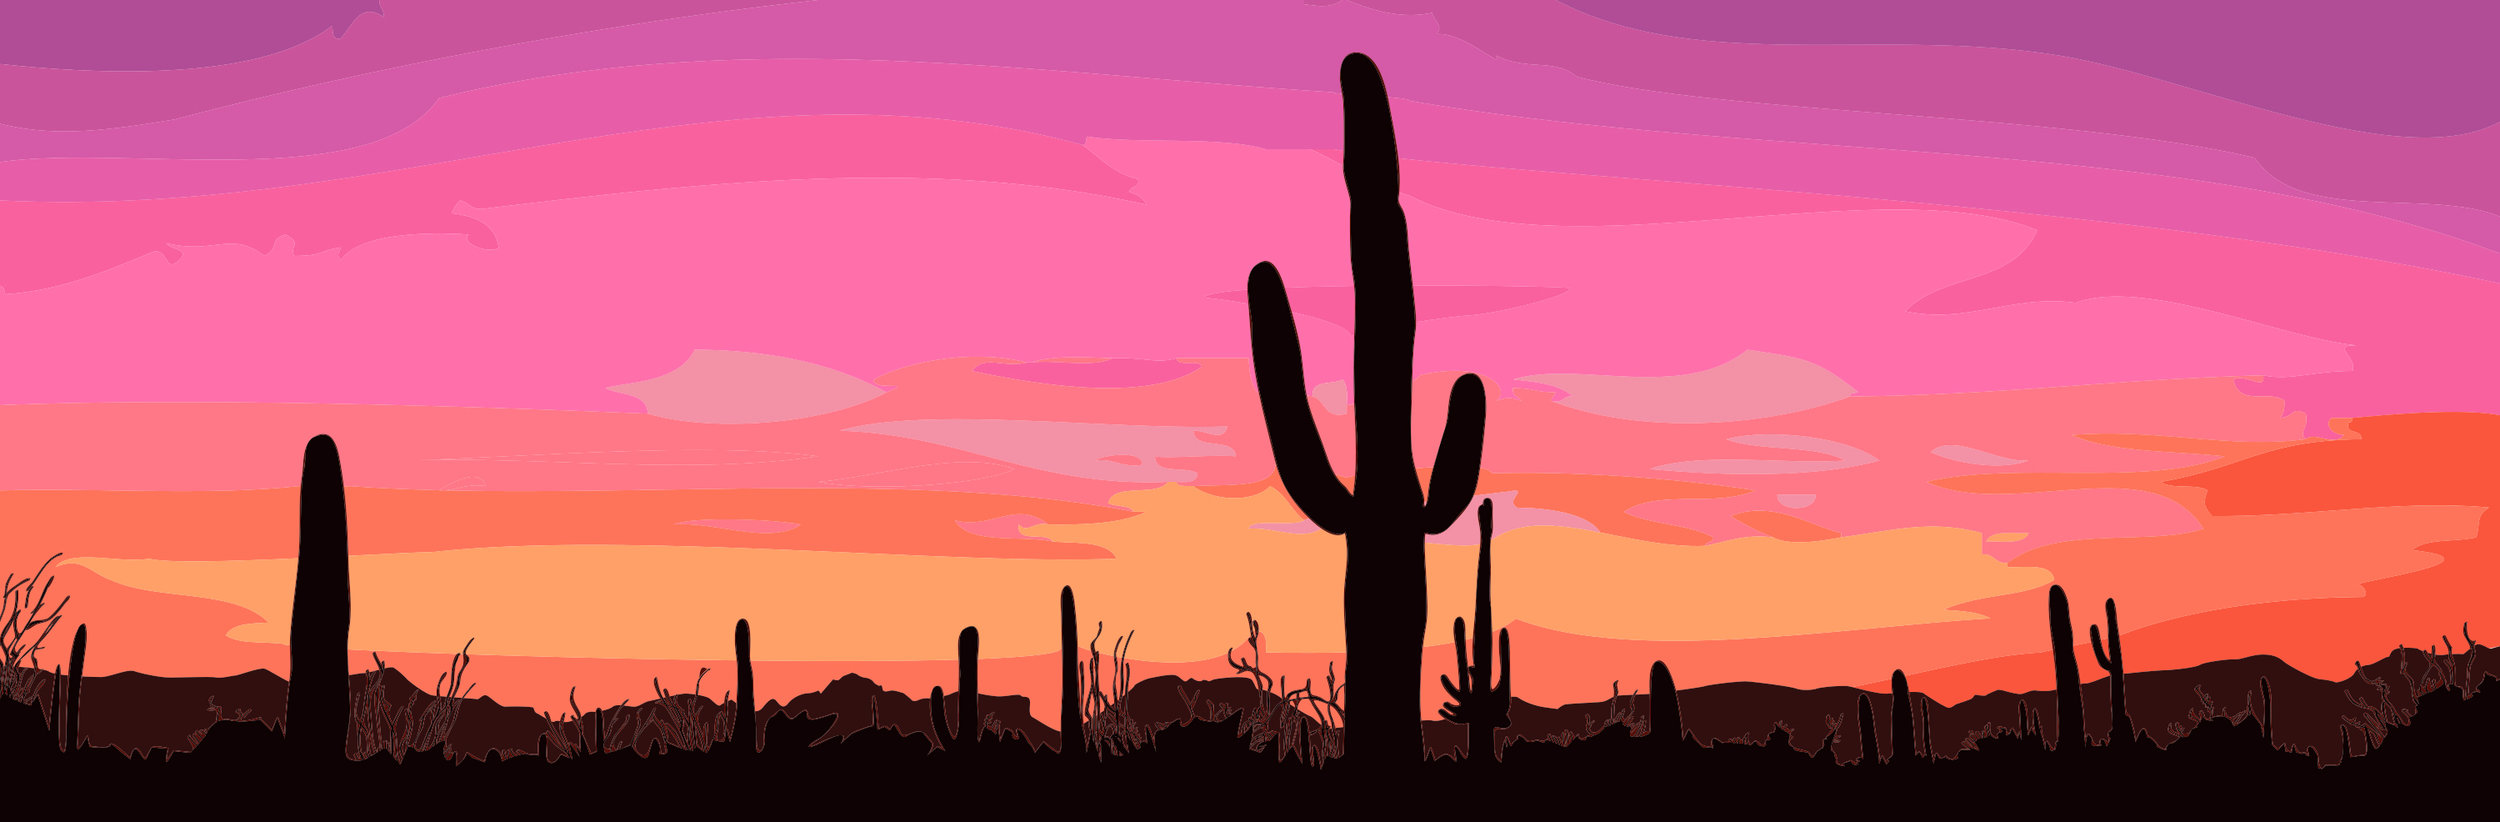 mexican-desert-sunset-with-cactus-vector-illustration_mkL8GL_L.jpg